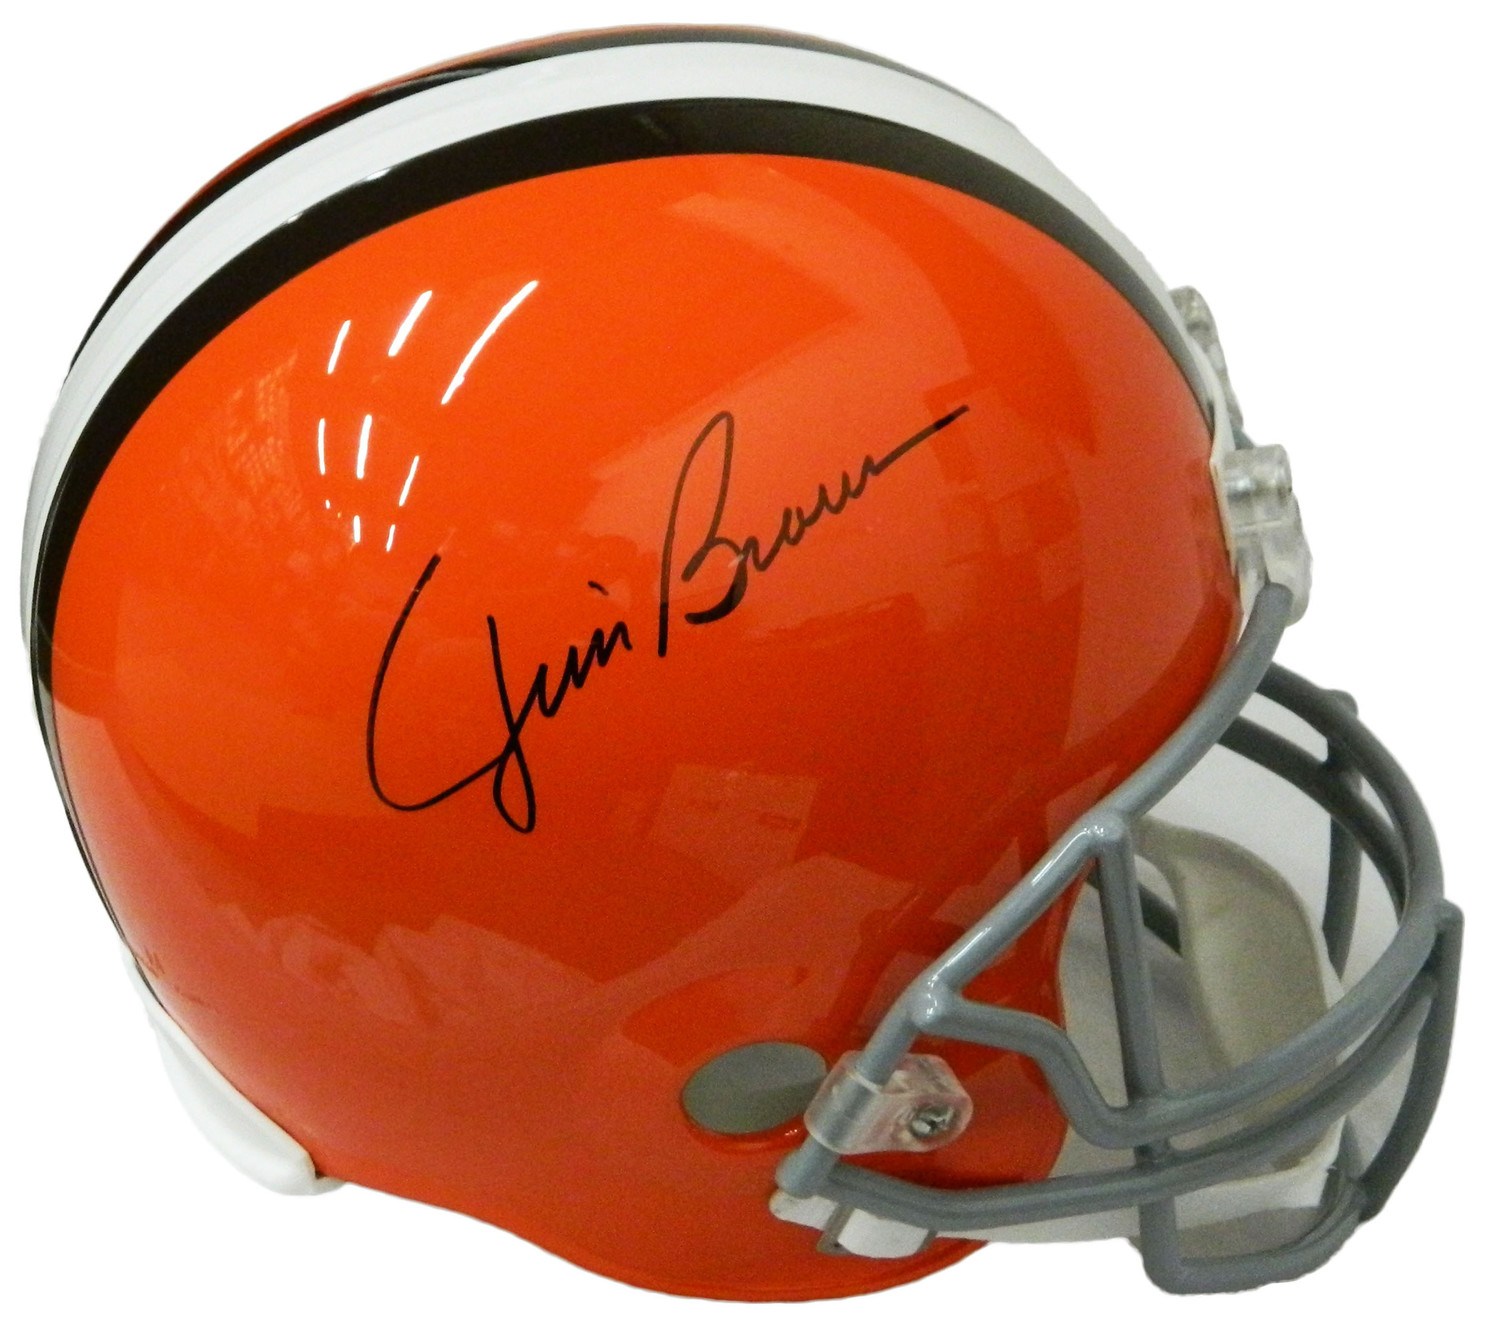 meet c10a2 39abf Jim Brown Autographed Signed Cleveland Browns Riddell Full ...